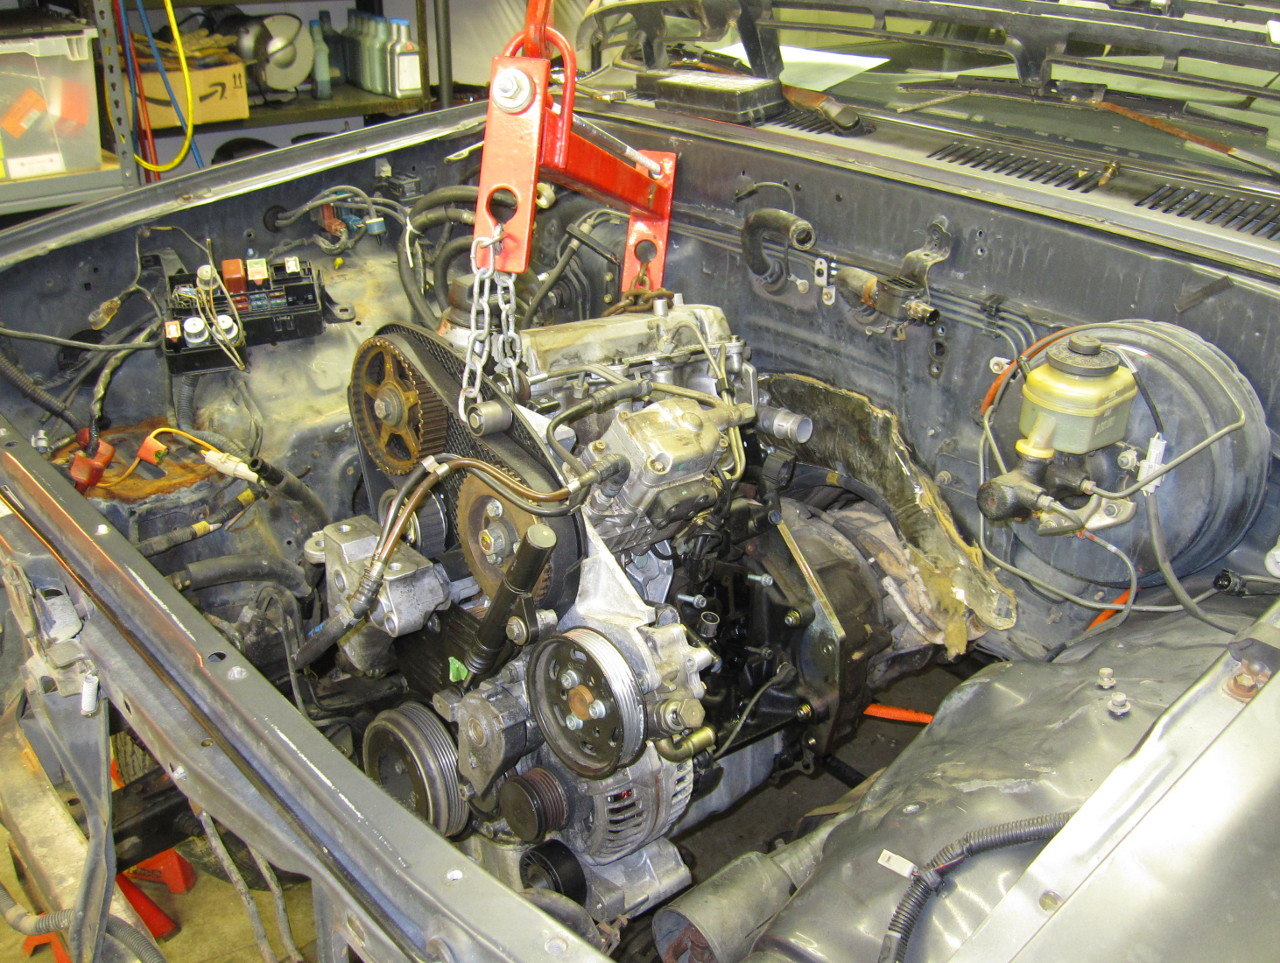 1203dp Reinforcing Our 1991 Suburbans Frame in addition MMK5 likewise Toyota Diesel Conversion Finished 13098 besides 2000 Extra Cab S10 5 3 Swap Cold Ac Fl 525275 additionally Ford Sas Bf150. on toyota tacoma engine swap